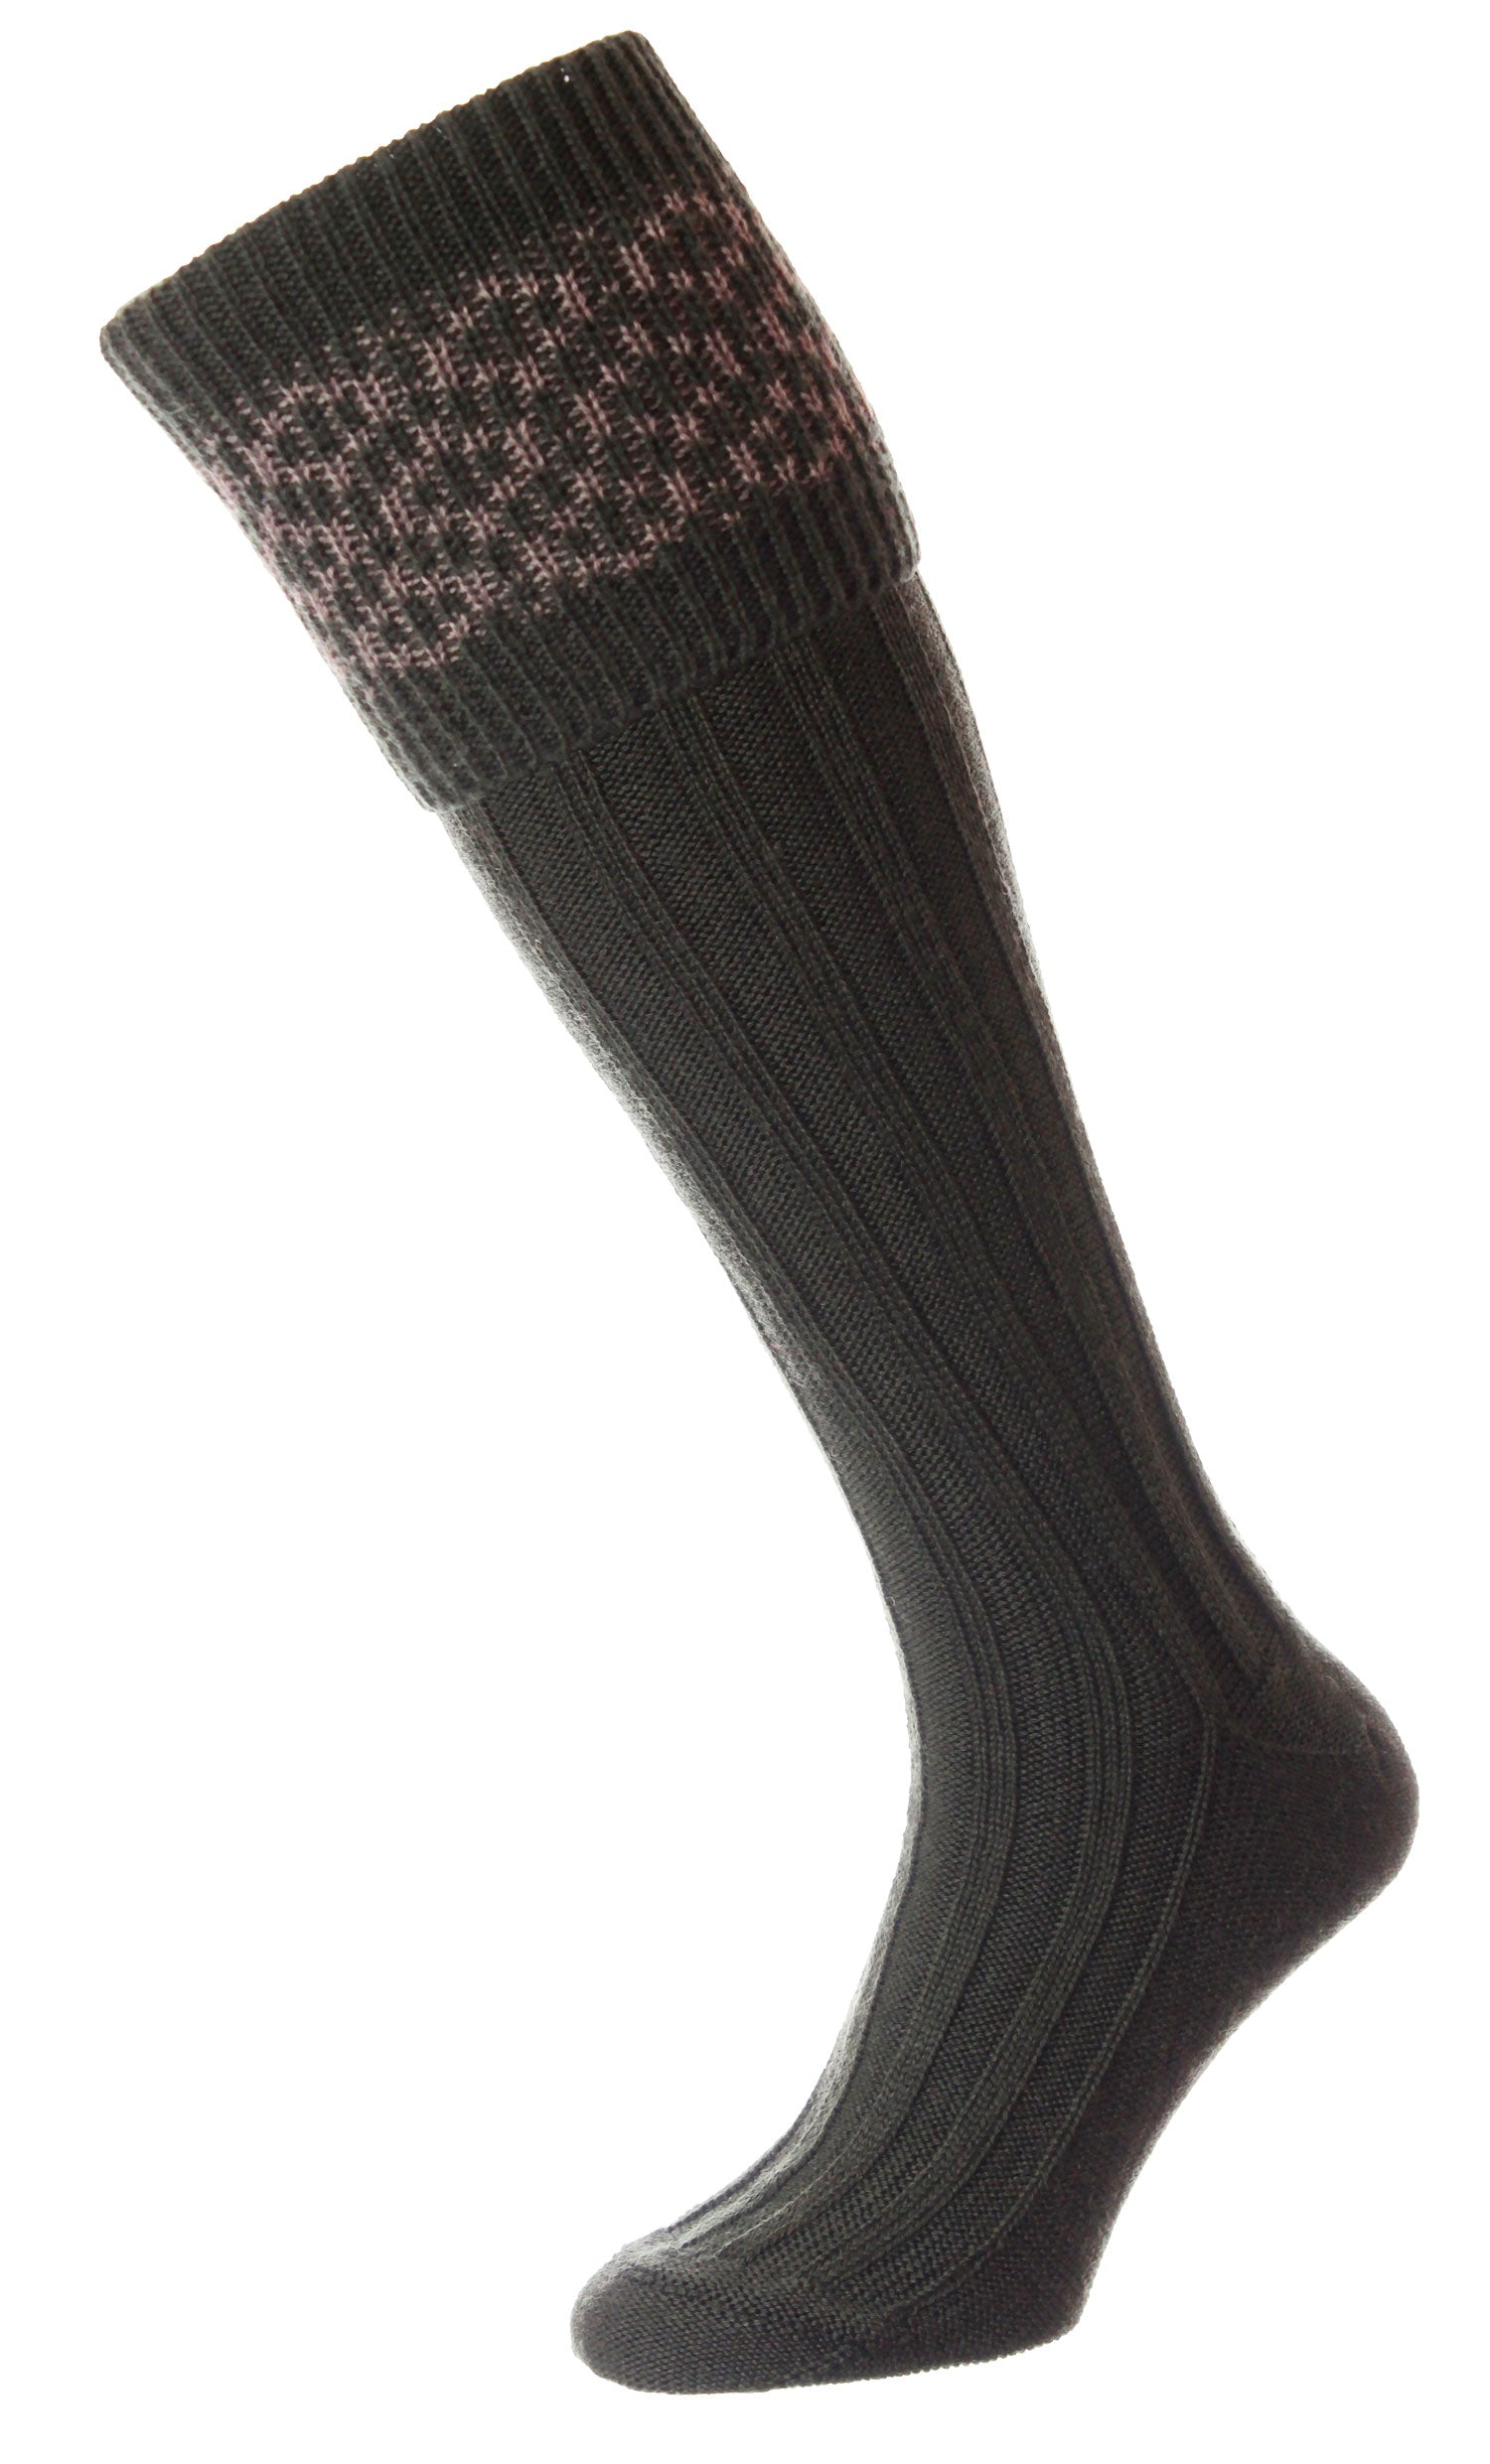 olive HJ Hall Cushion Foot Shooting Sock | Patterned Top